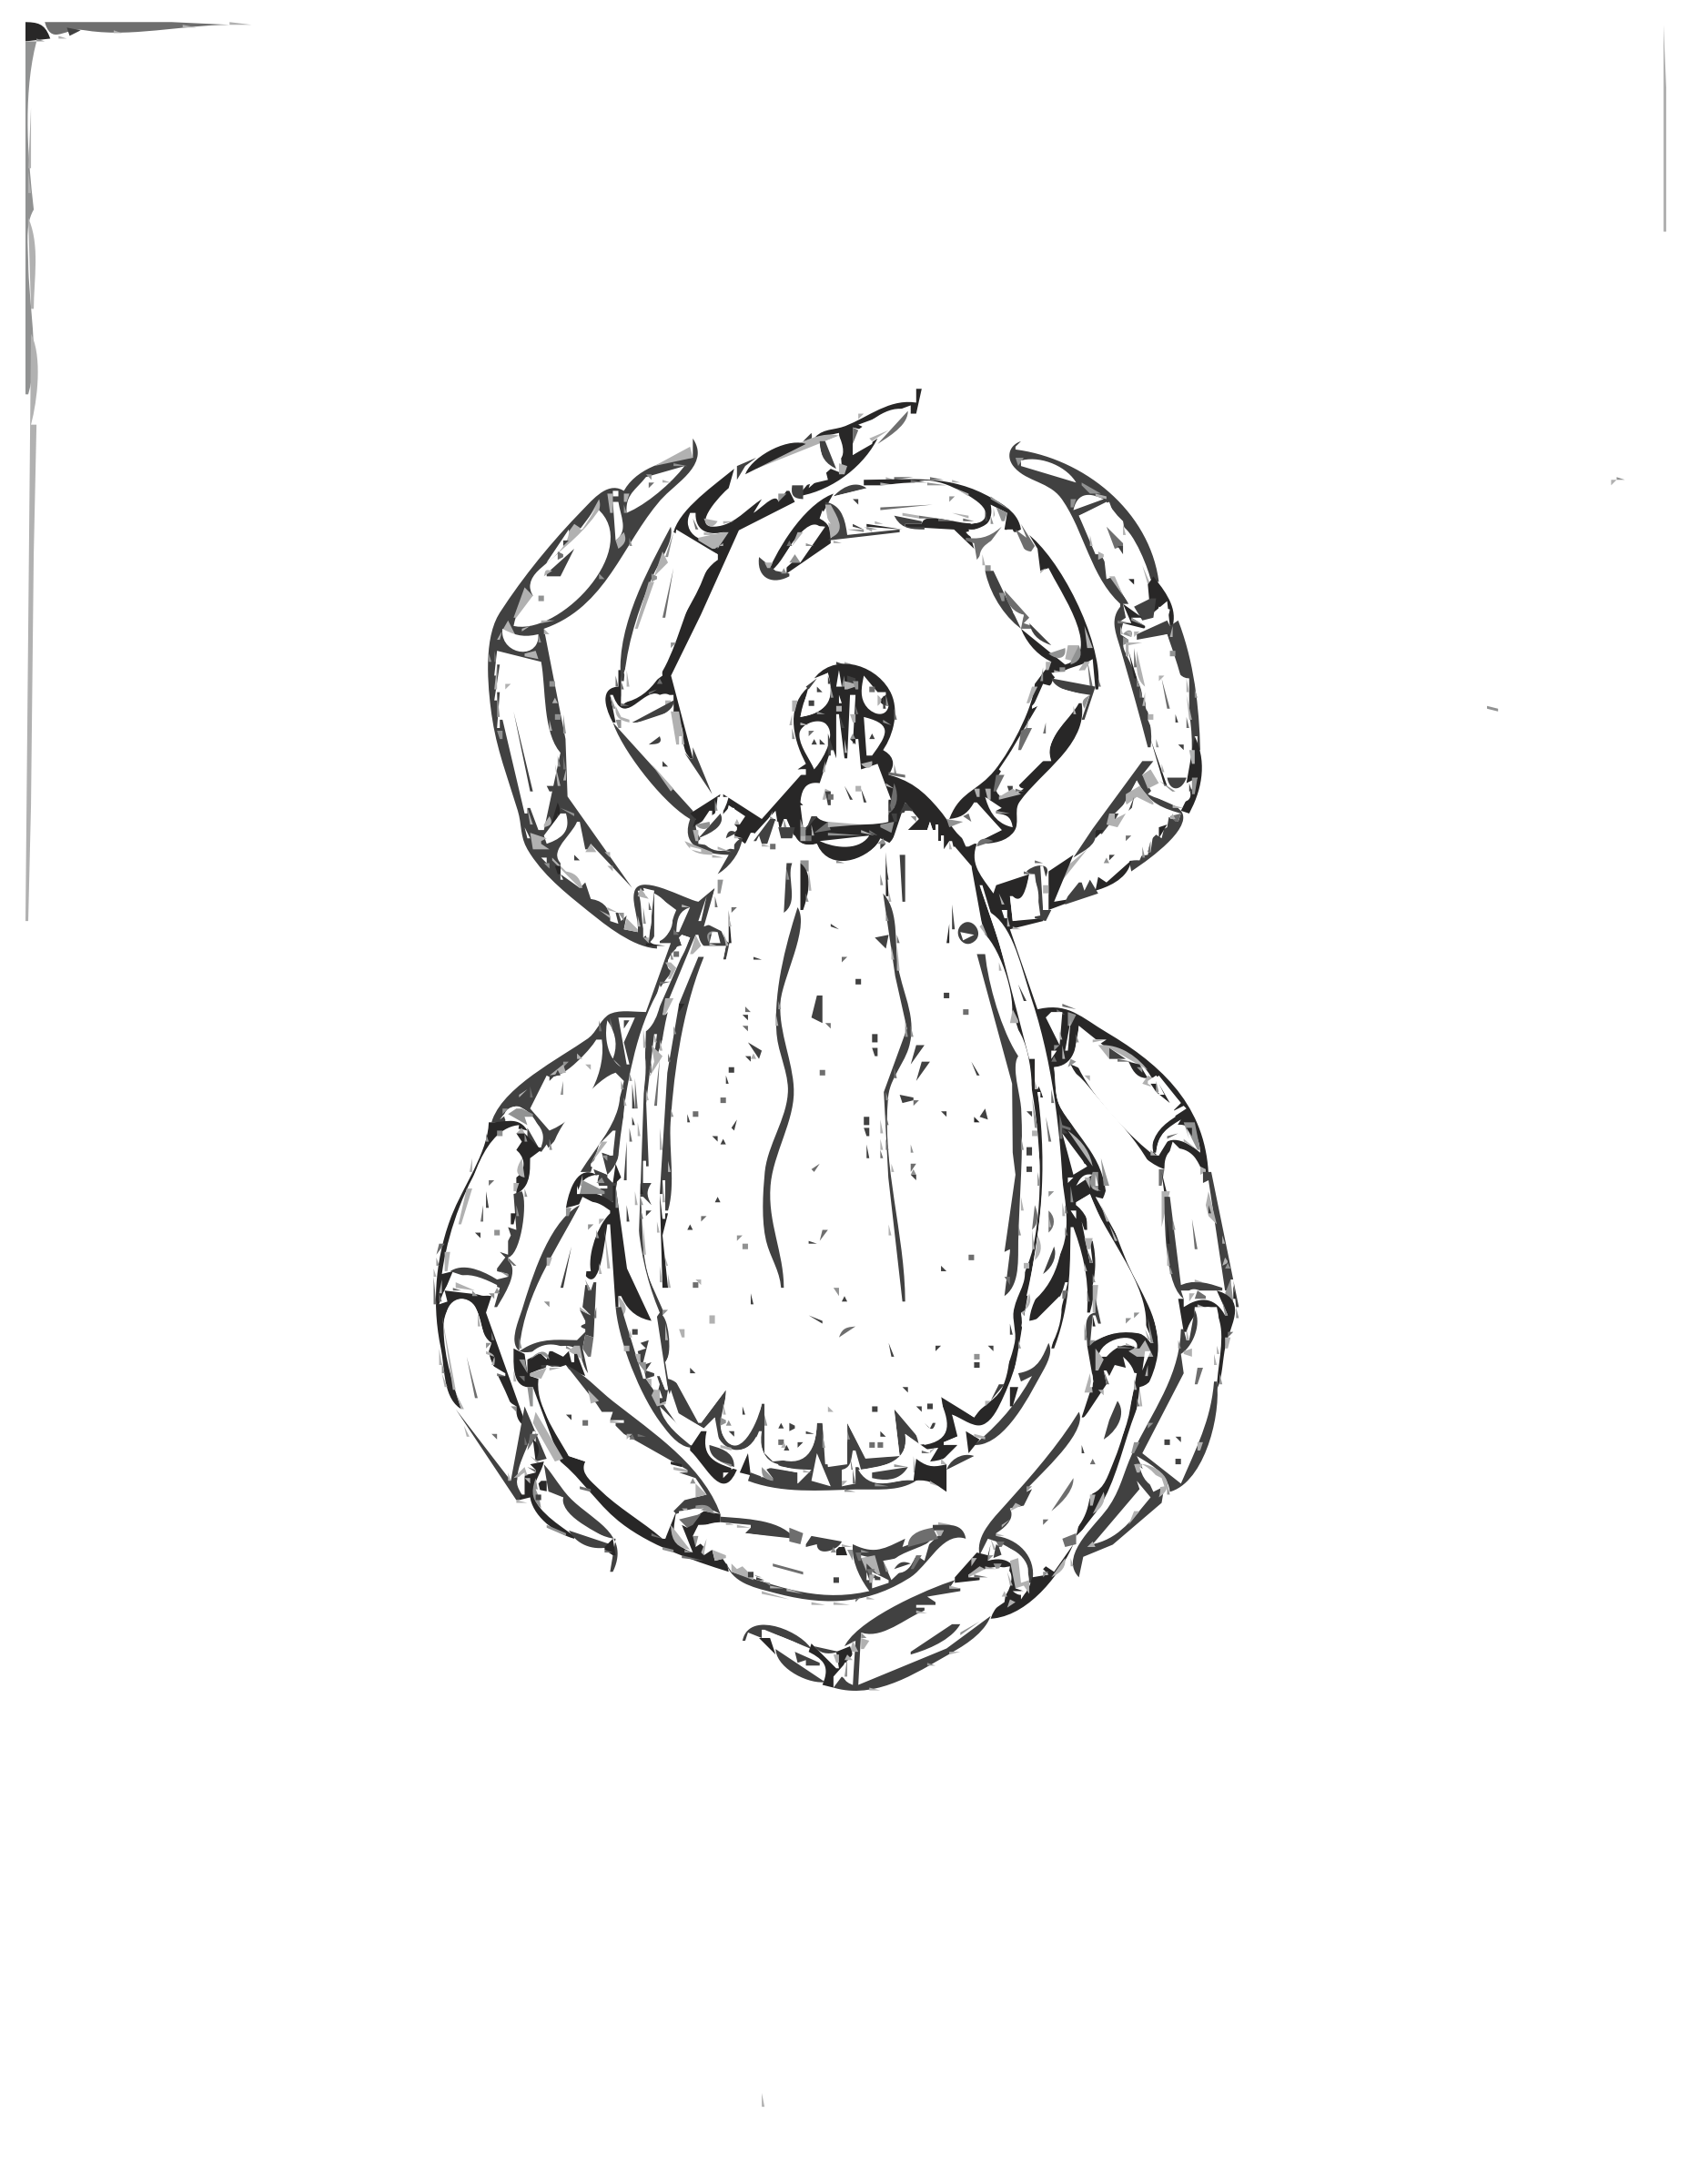 Tick image for clip art (UNCLASSIFIED) by david.h.nielsen.mil